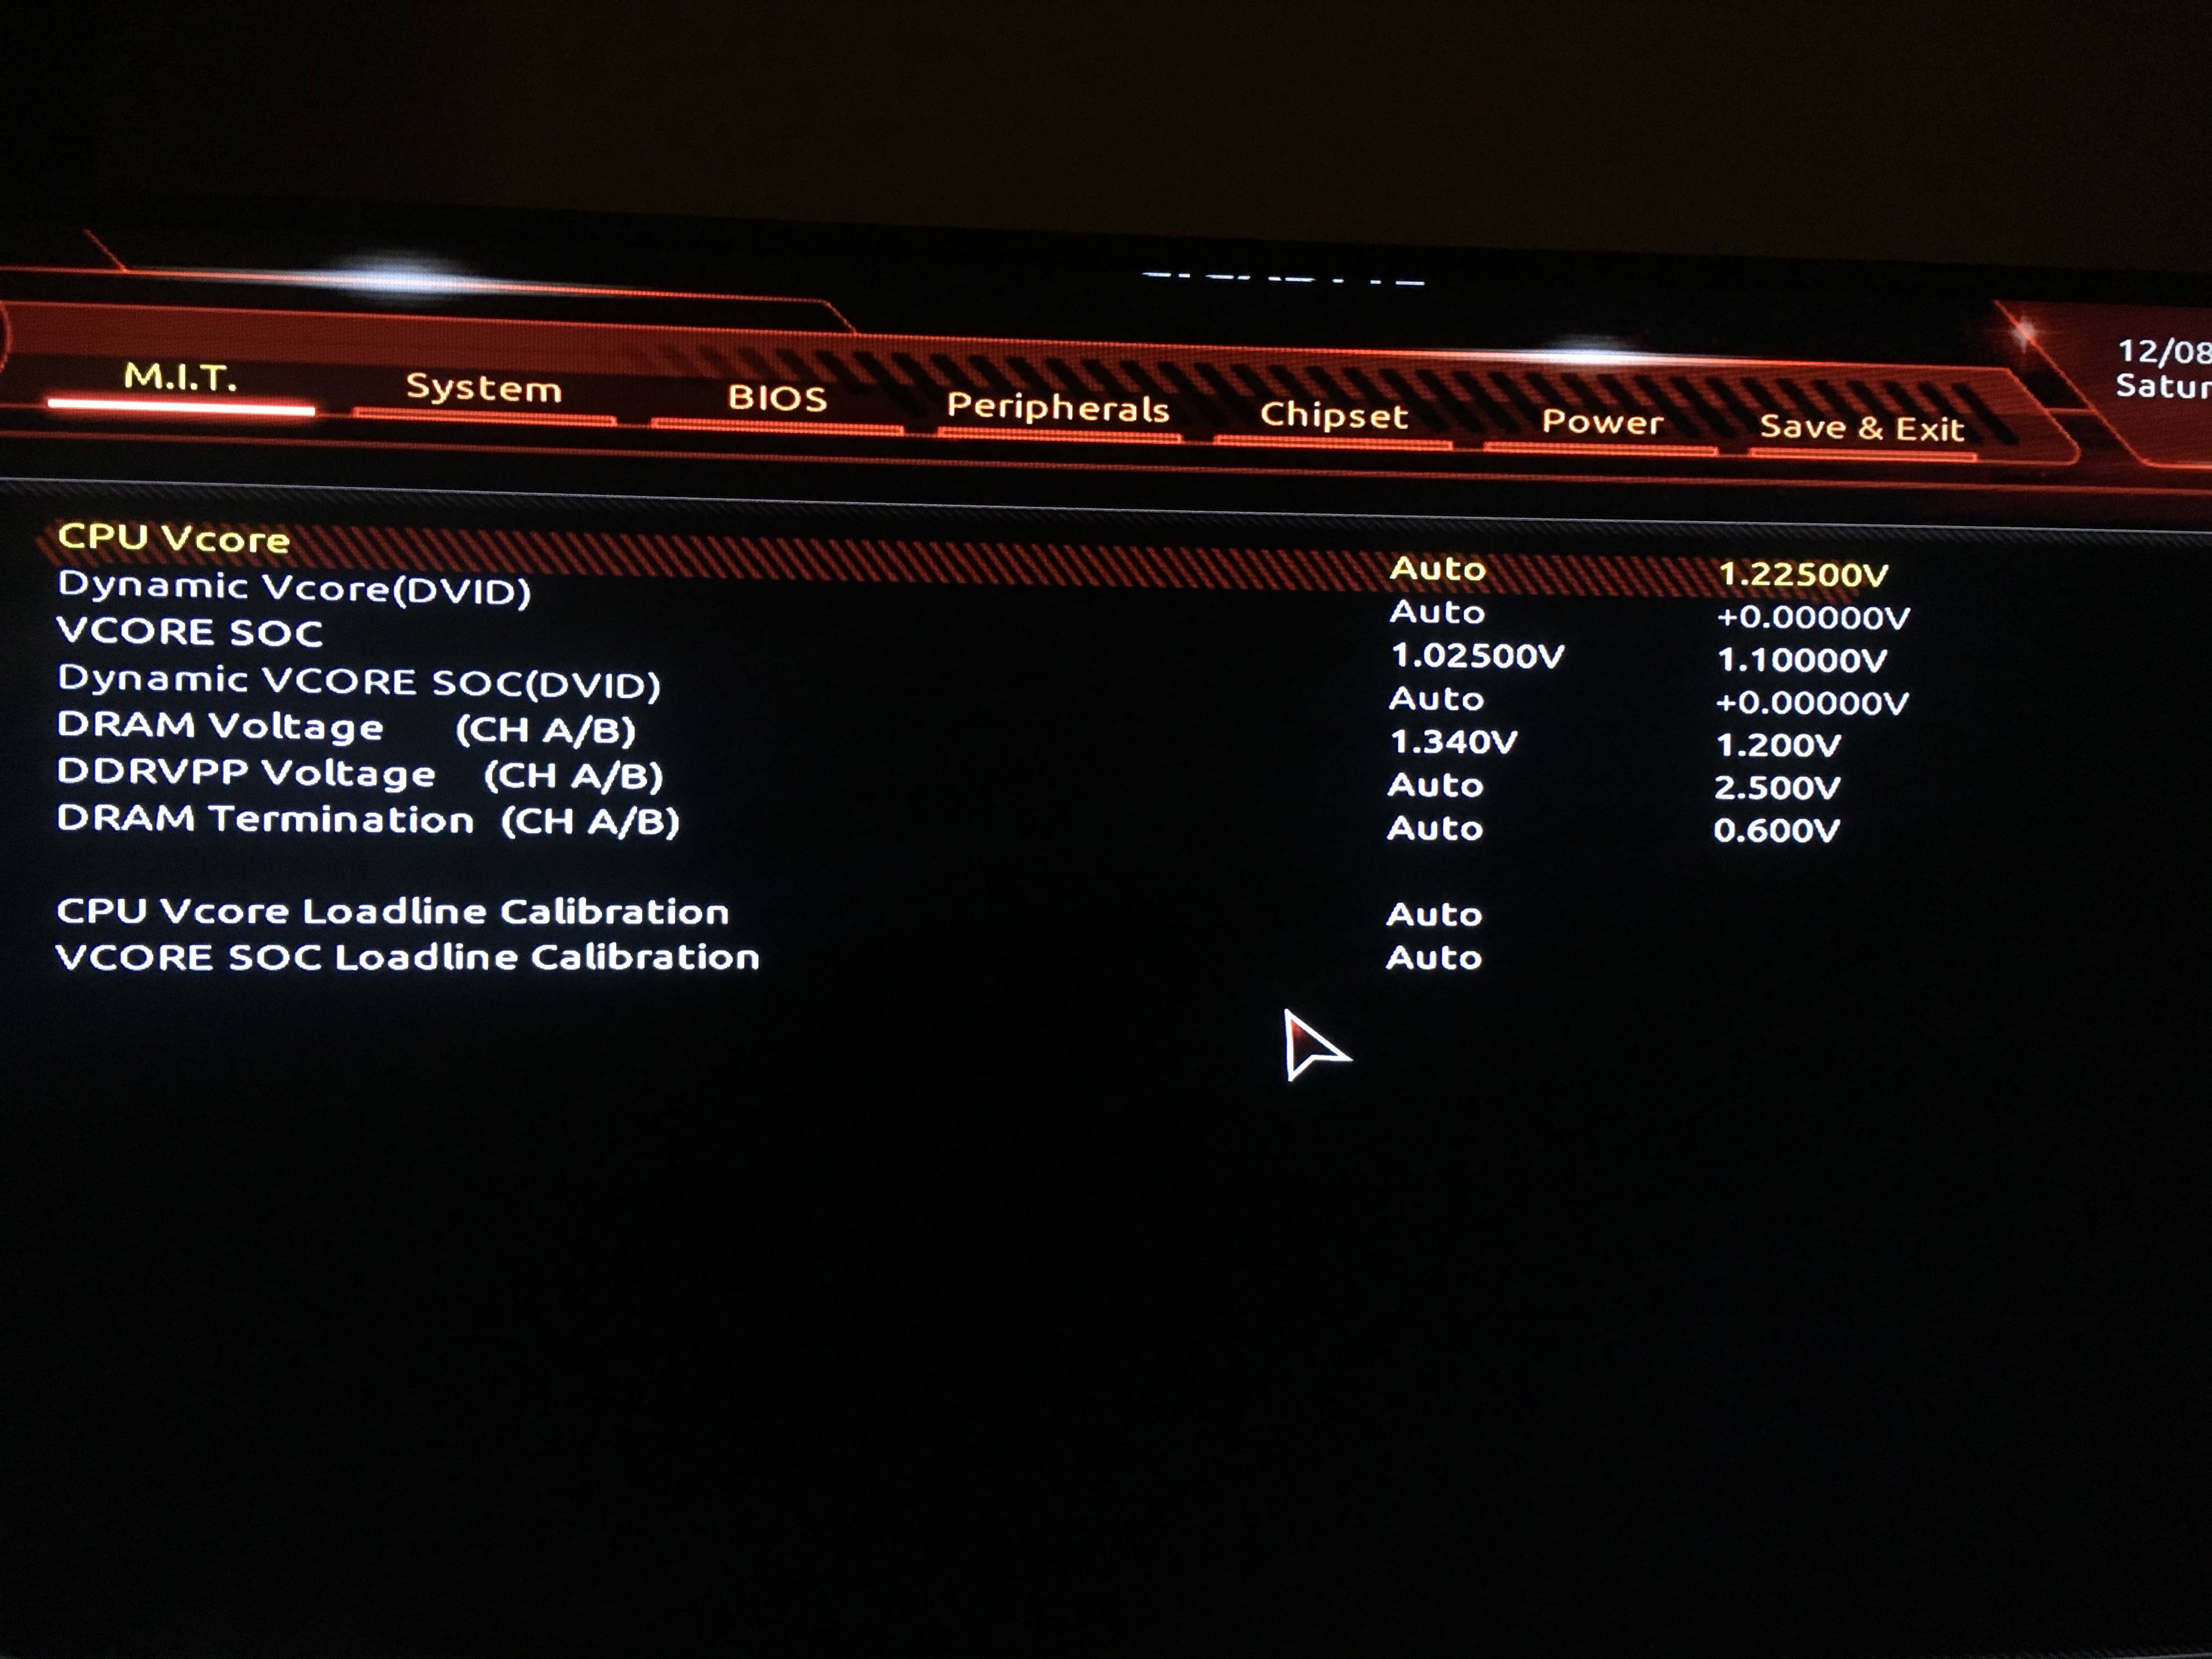 RAM issues at rated speed and timings - CPUs, Motherboards, and